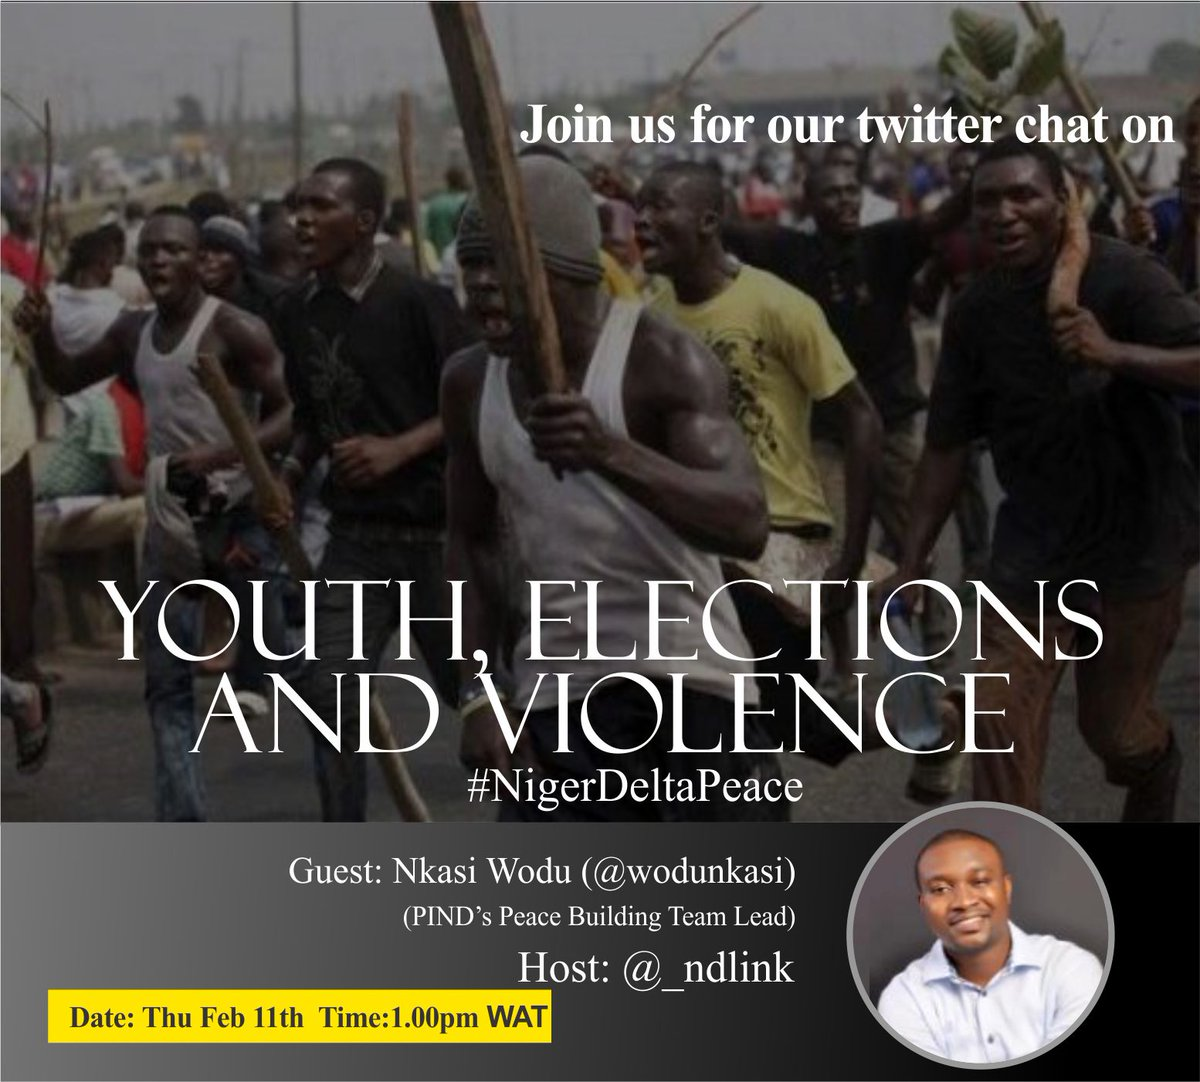 Our twitter chat with @WoduNkasi starts in exactly one hour #NigerDeltaPeace https://t.co/83CmOMSDz7